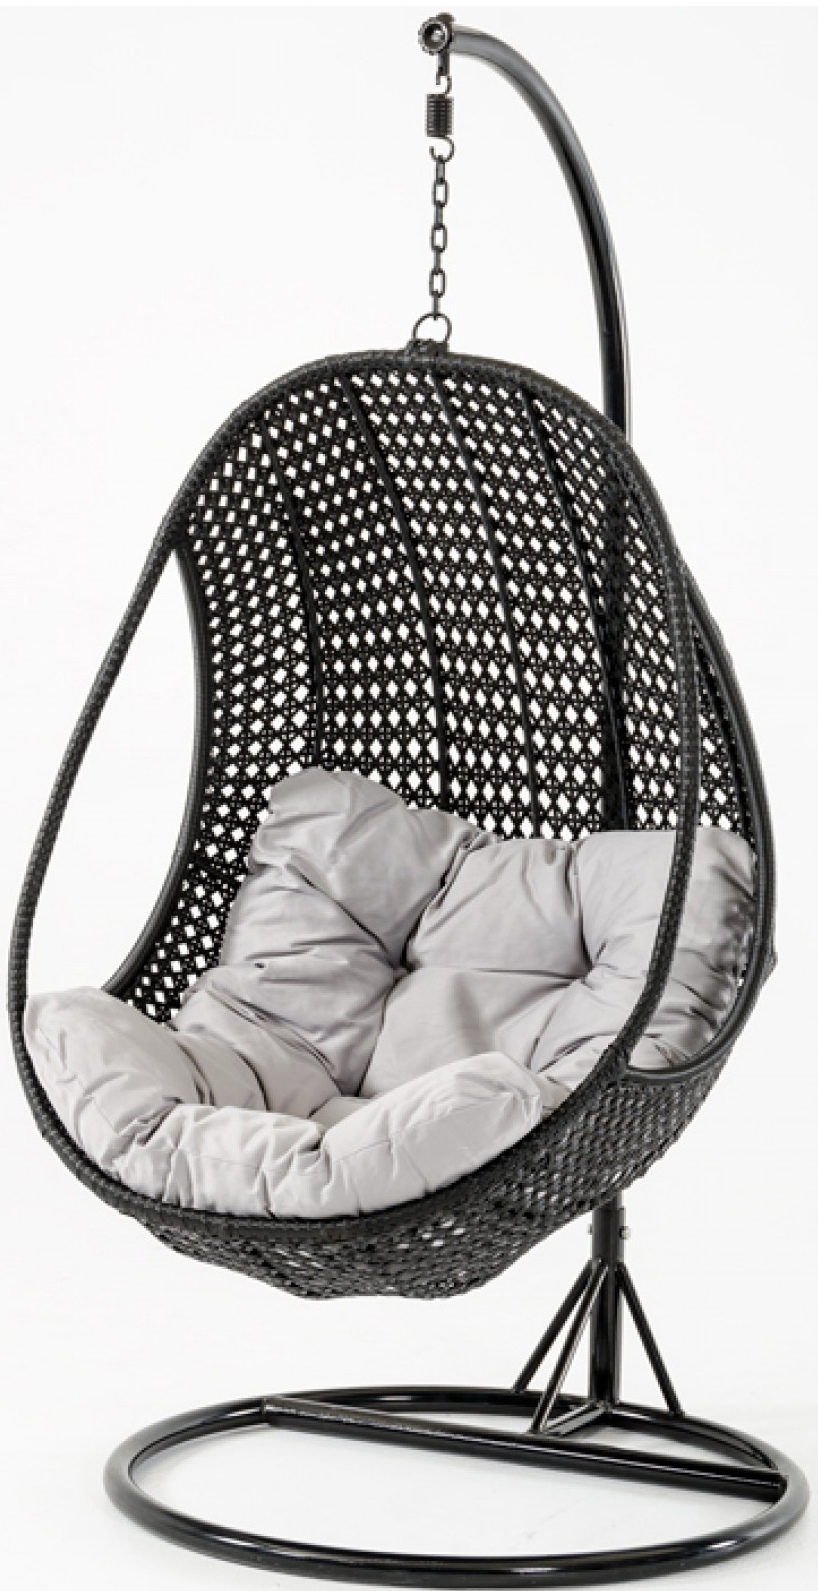 Sardinia Rattan Pod Hanging Chair  Outdoor Patio Furniture